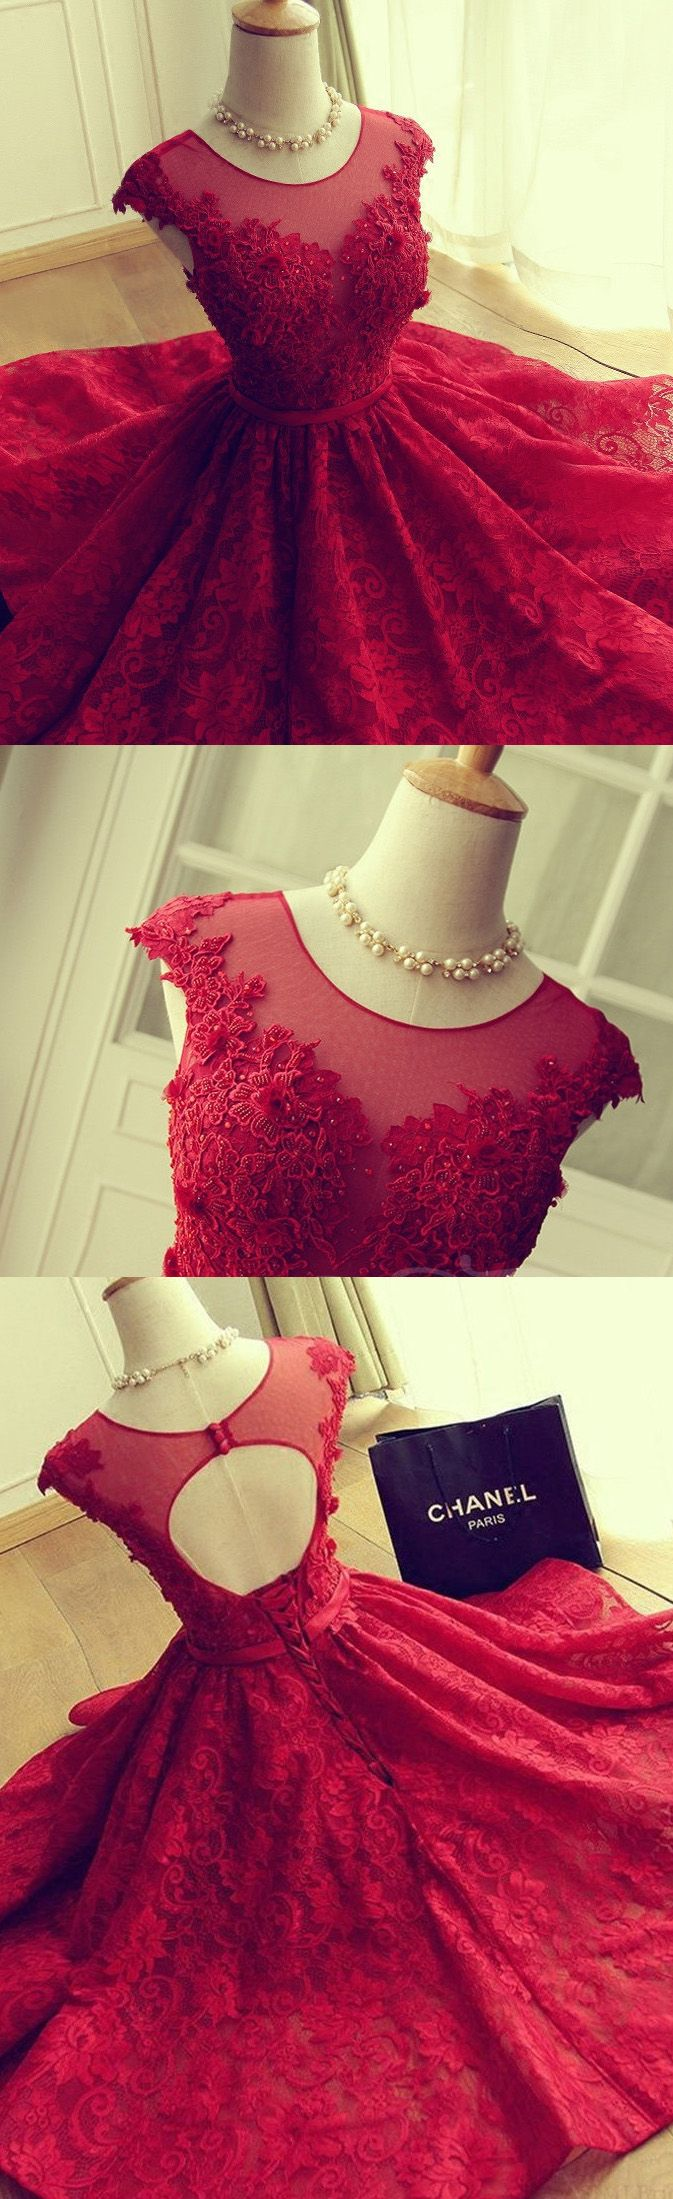 Red prom dresses short prom dresses homecoming dress lace red